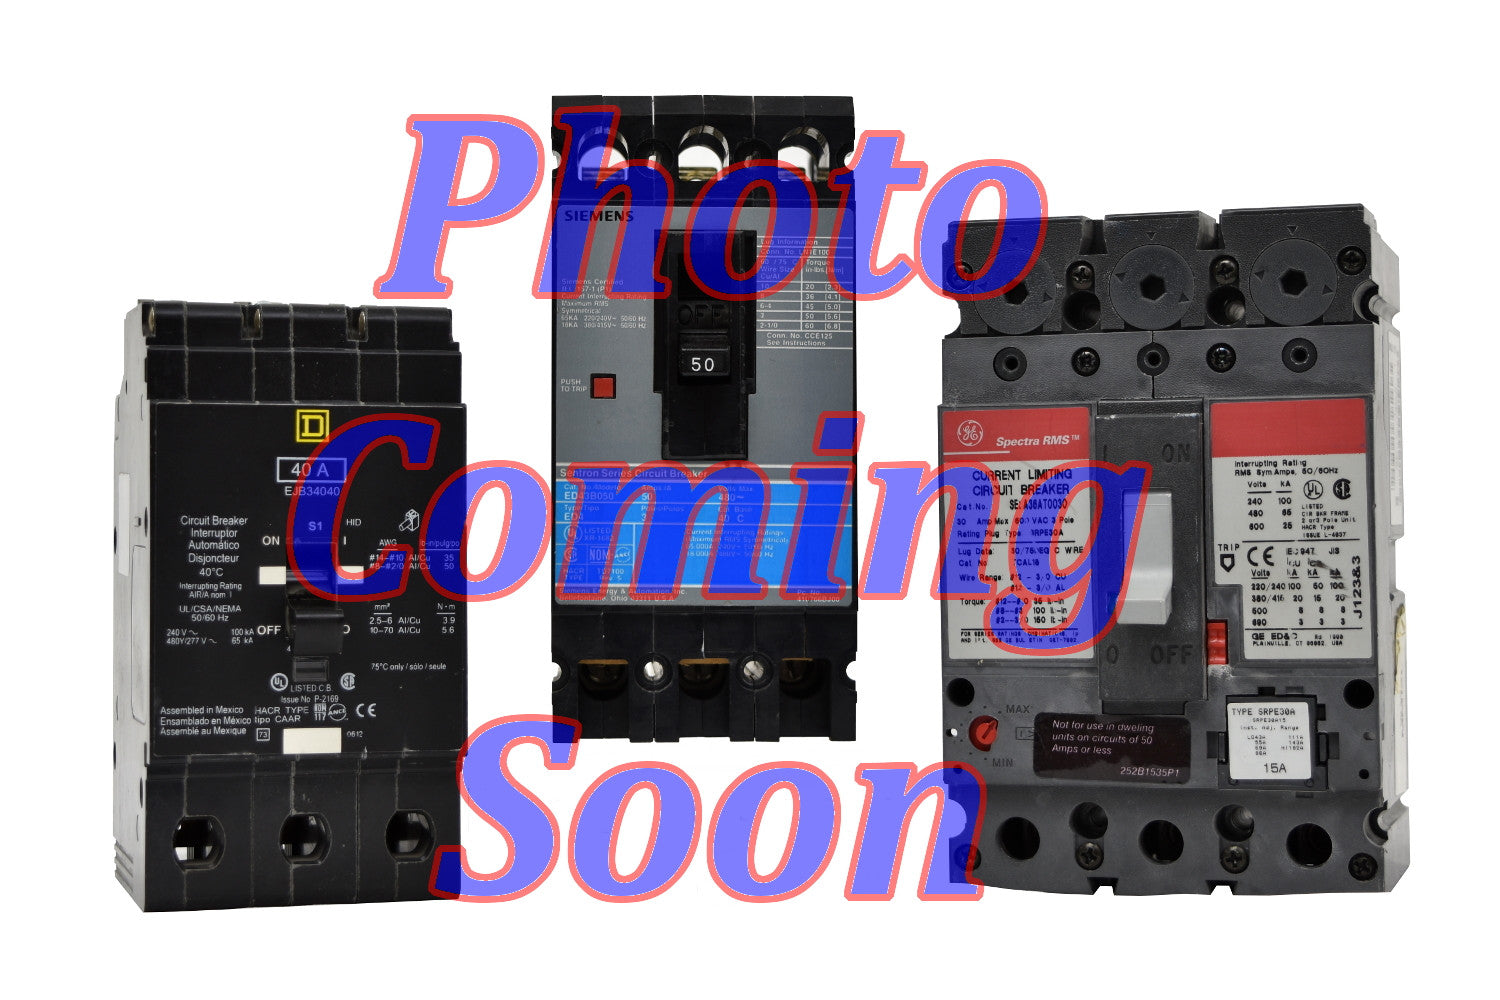 Cutler Hammer BD1520 Circuit Breakers